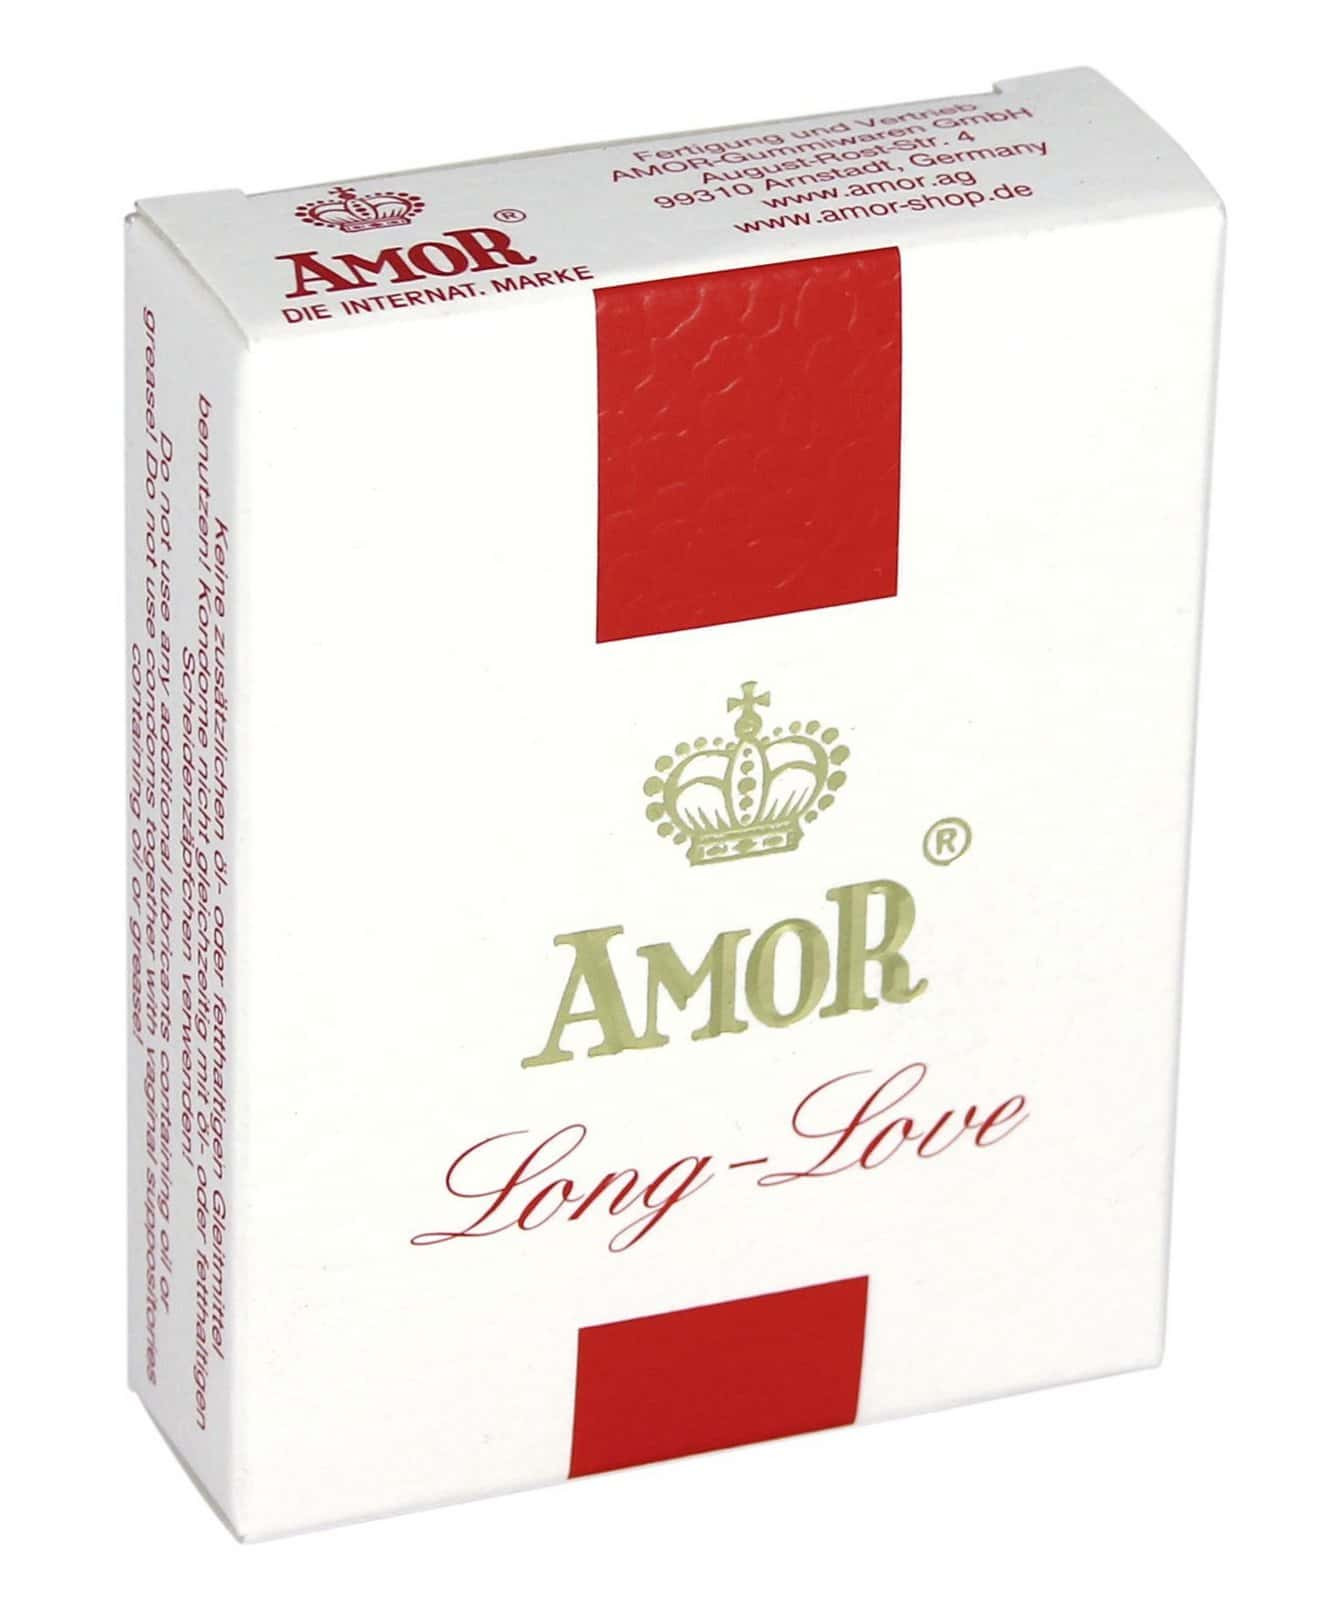 AMOR Long Love/3 pcs content thumbnail